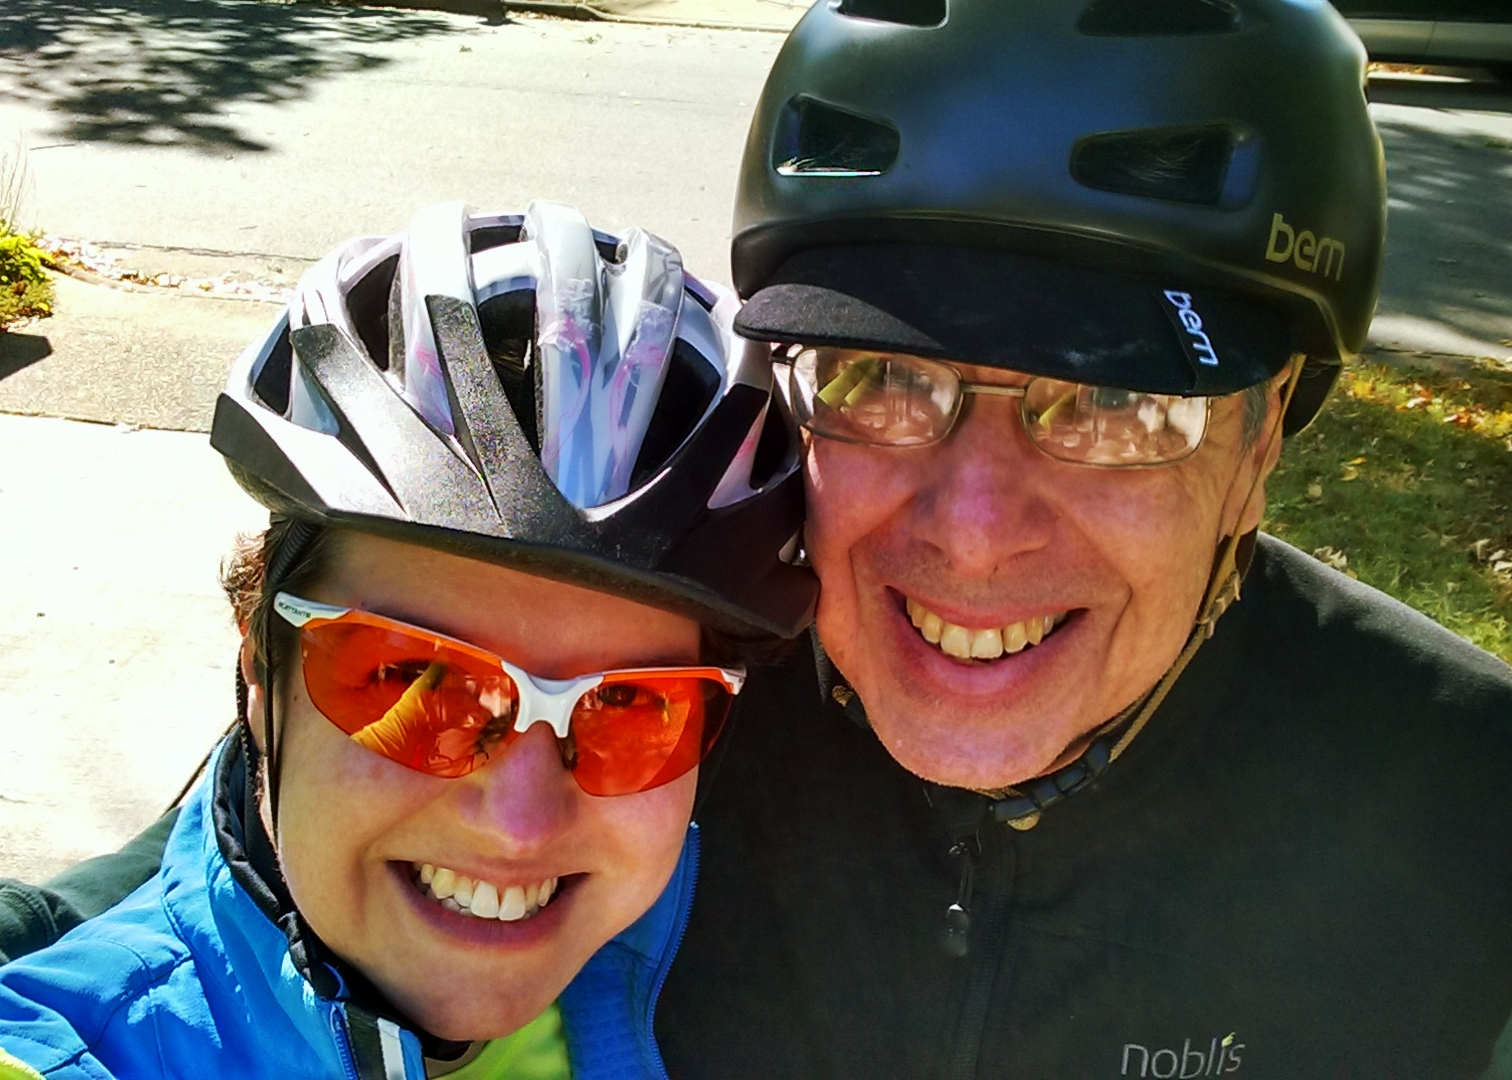 A year ago I never would have guessed that I would spend a Saturday afternoon on bikes with Dad